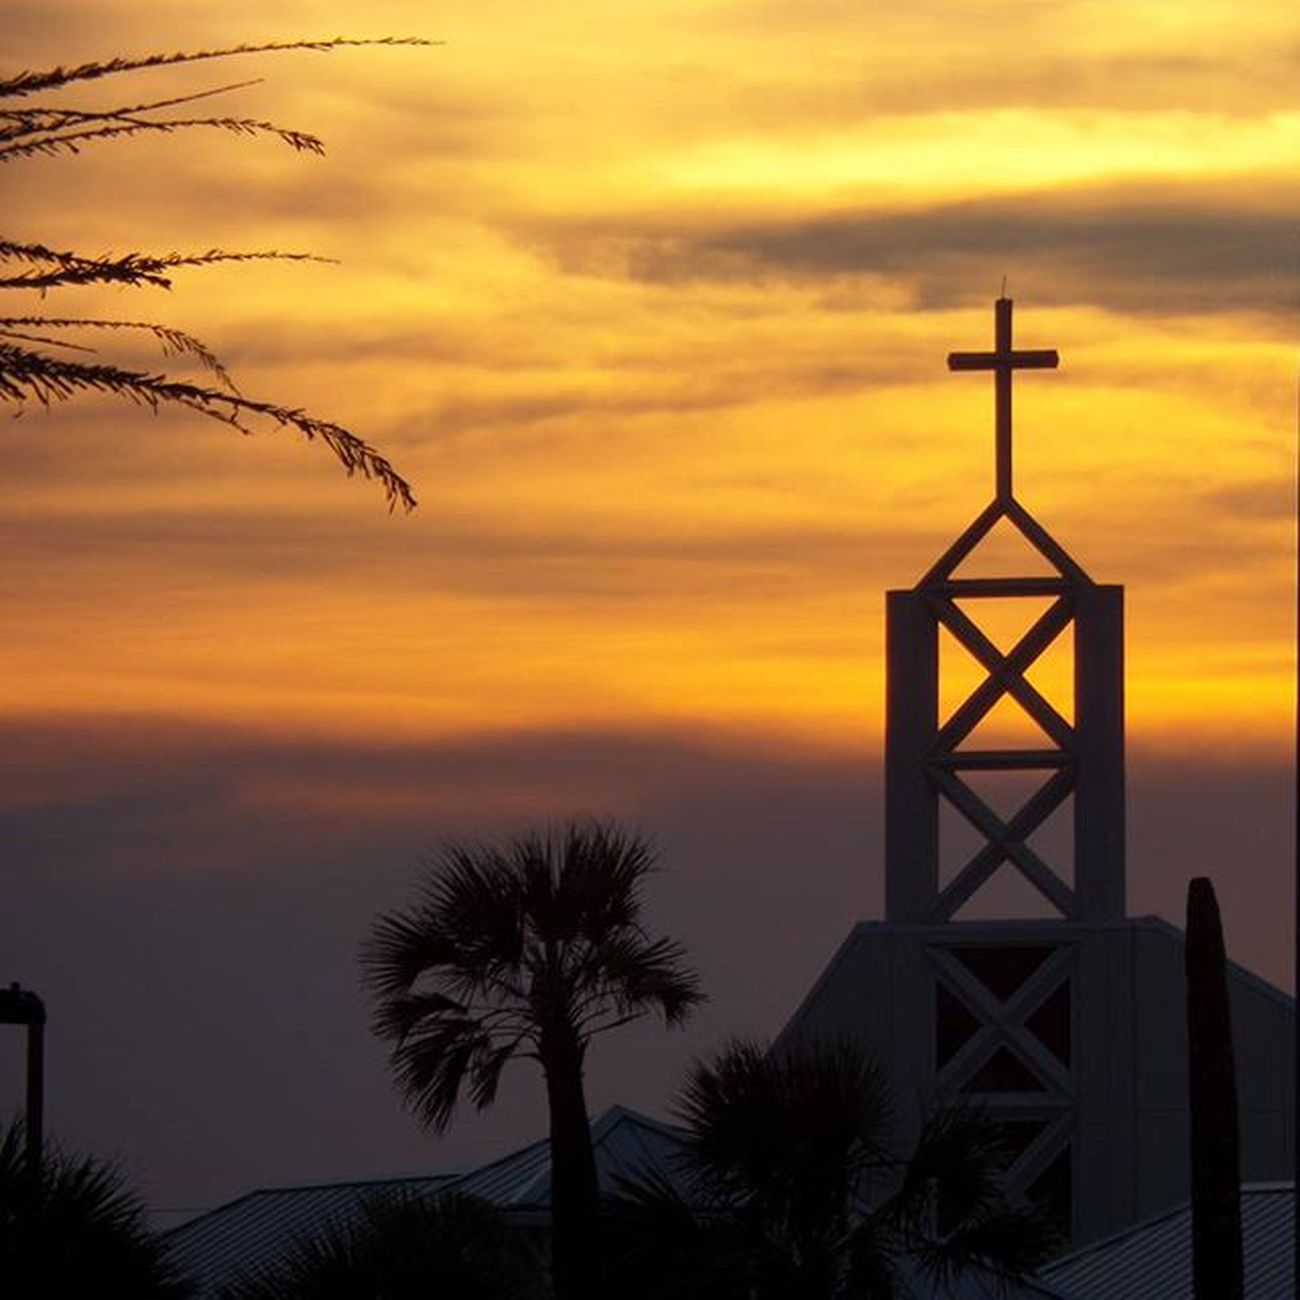 Holy sunset at the beach over Beach Church Jax Sunset Nofilter Jaxbeach Voidlive Igersjax Igers Eyesofjax Firstcoastnews Sunset_madness Sunsetsniper Florida Ilovejax Iloveflorida Skyporn Sky Church